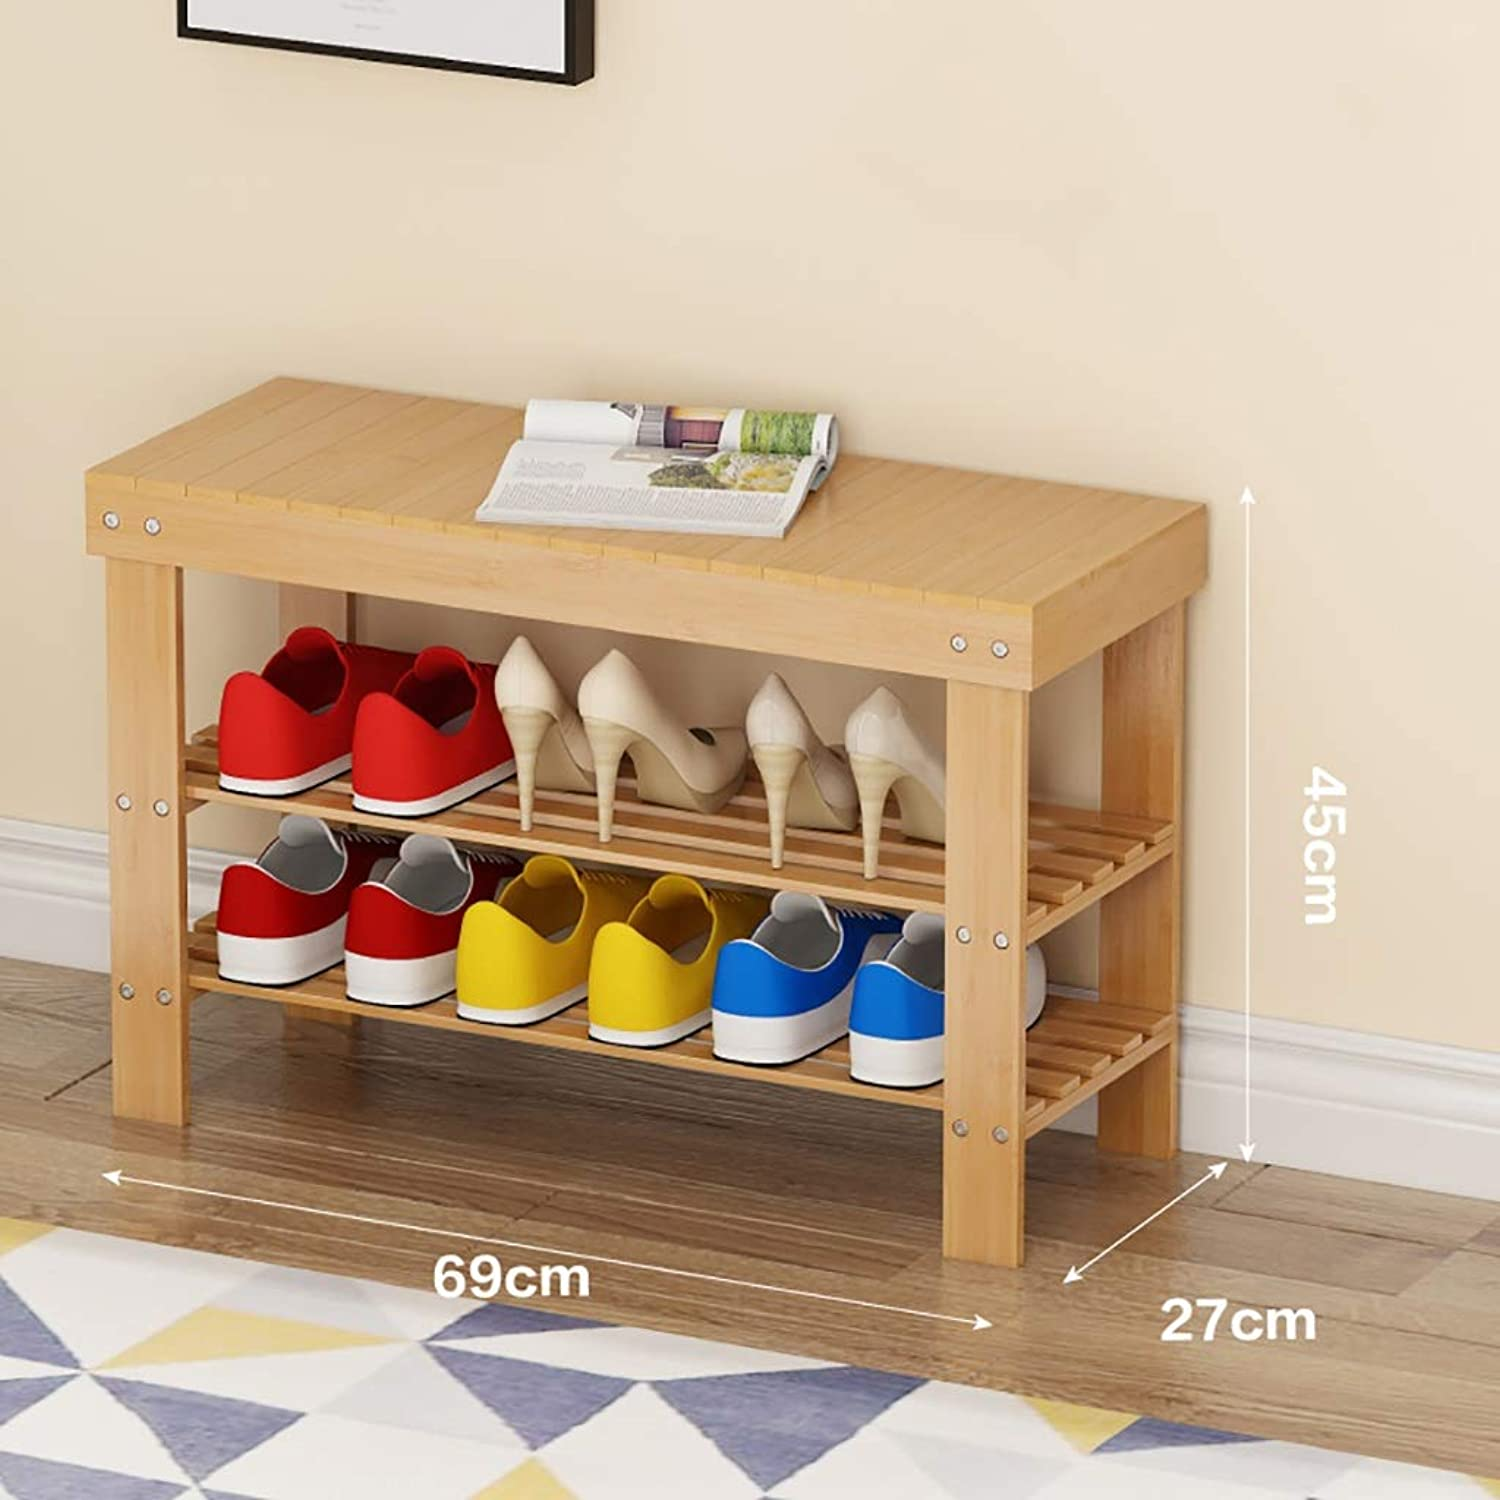 shoes Rack Change shoes Bench Small shoes Cabinet at The Door Can sit on a shoes Bench Storage Stool Bamboo Household Space Saving Multifunction 2 Layer (Size   69  27  45cm)